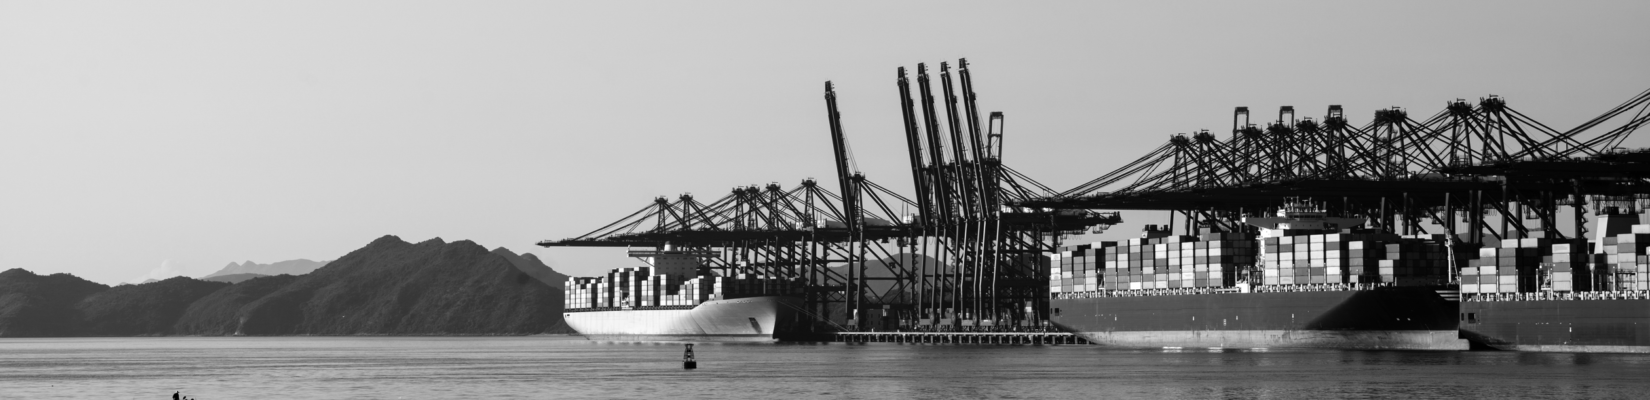 Black and White Image of Container Terminal with Shipped Docked and Mountains in the Background - BluJay Customs